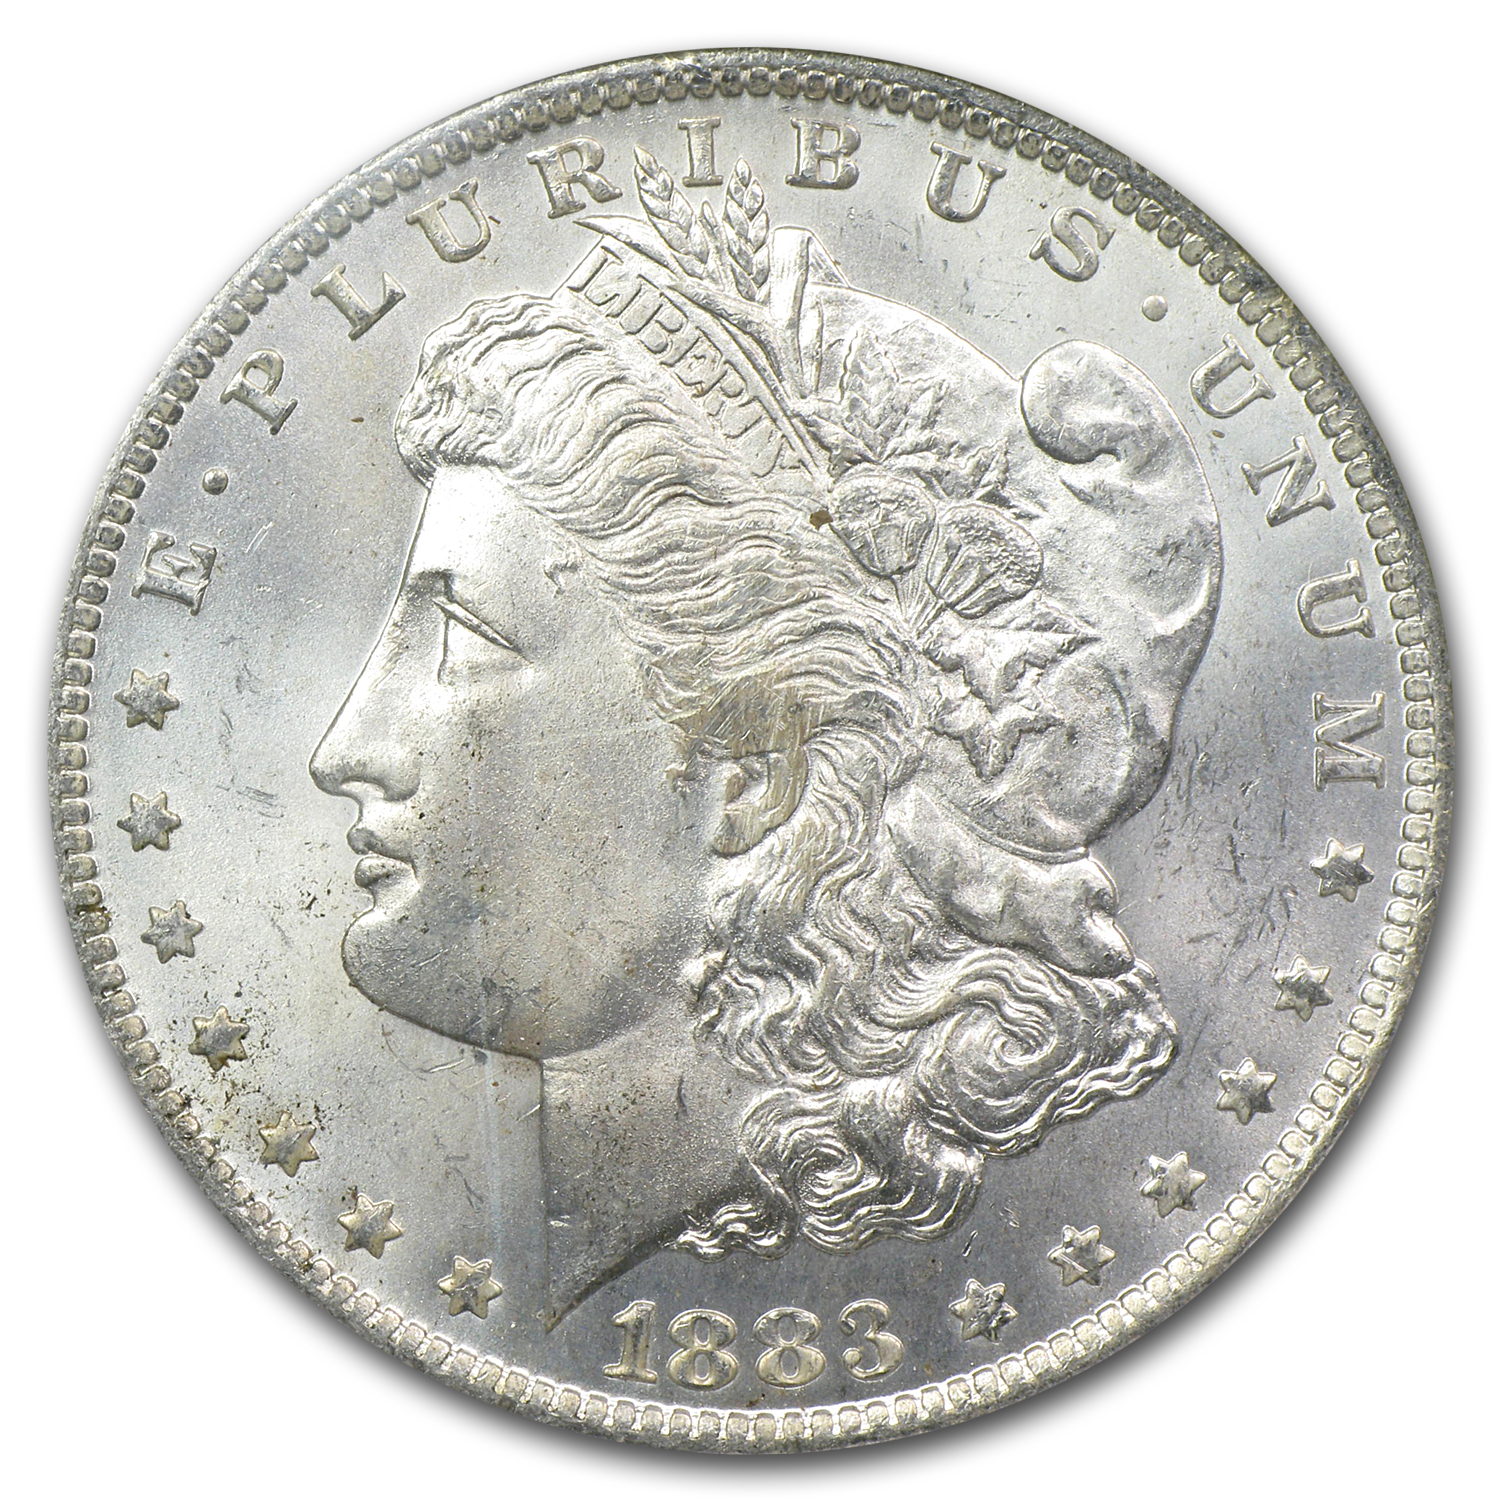 1883-O Morgan Dollar - MS-65* Star NGC - Blue and Gold Reverse